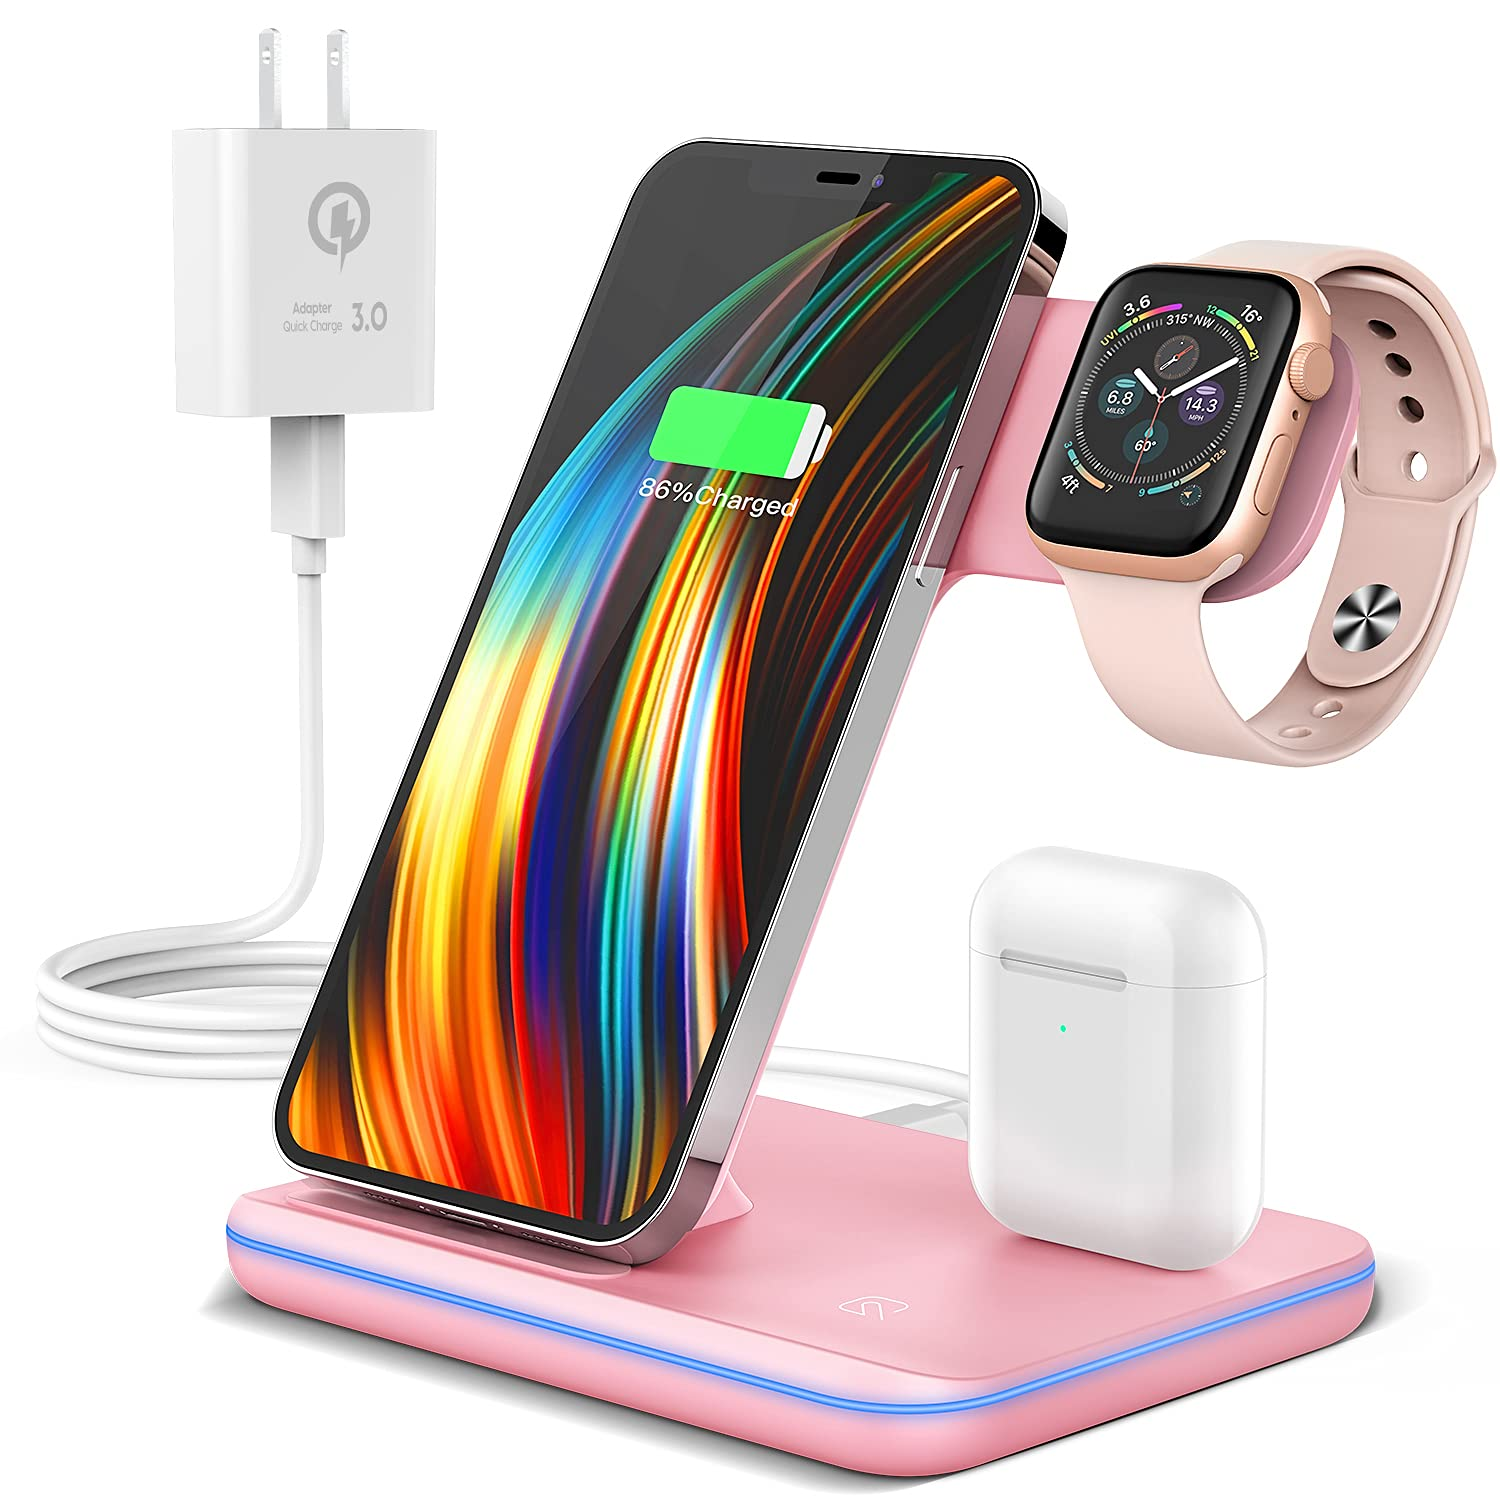 Wireless Charging Station, 2021 Upgraded 3 in 1 Wireless Charger Stand with Breathing Indicator Compatible with iPhone 12/11 Pro/XS/XR/8, Watch 6/SE/5/4/3 & AirPods(Pink)